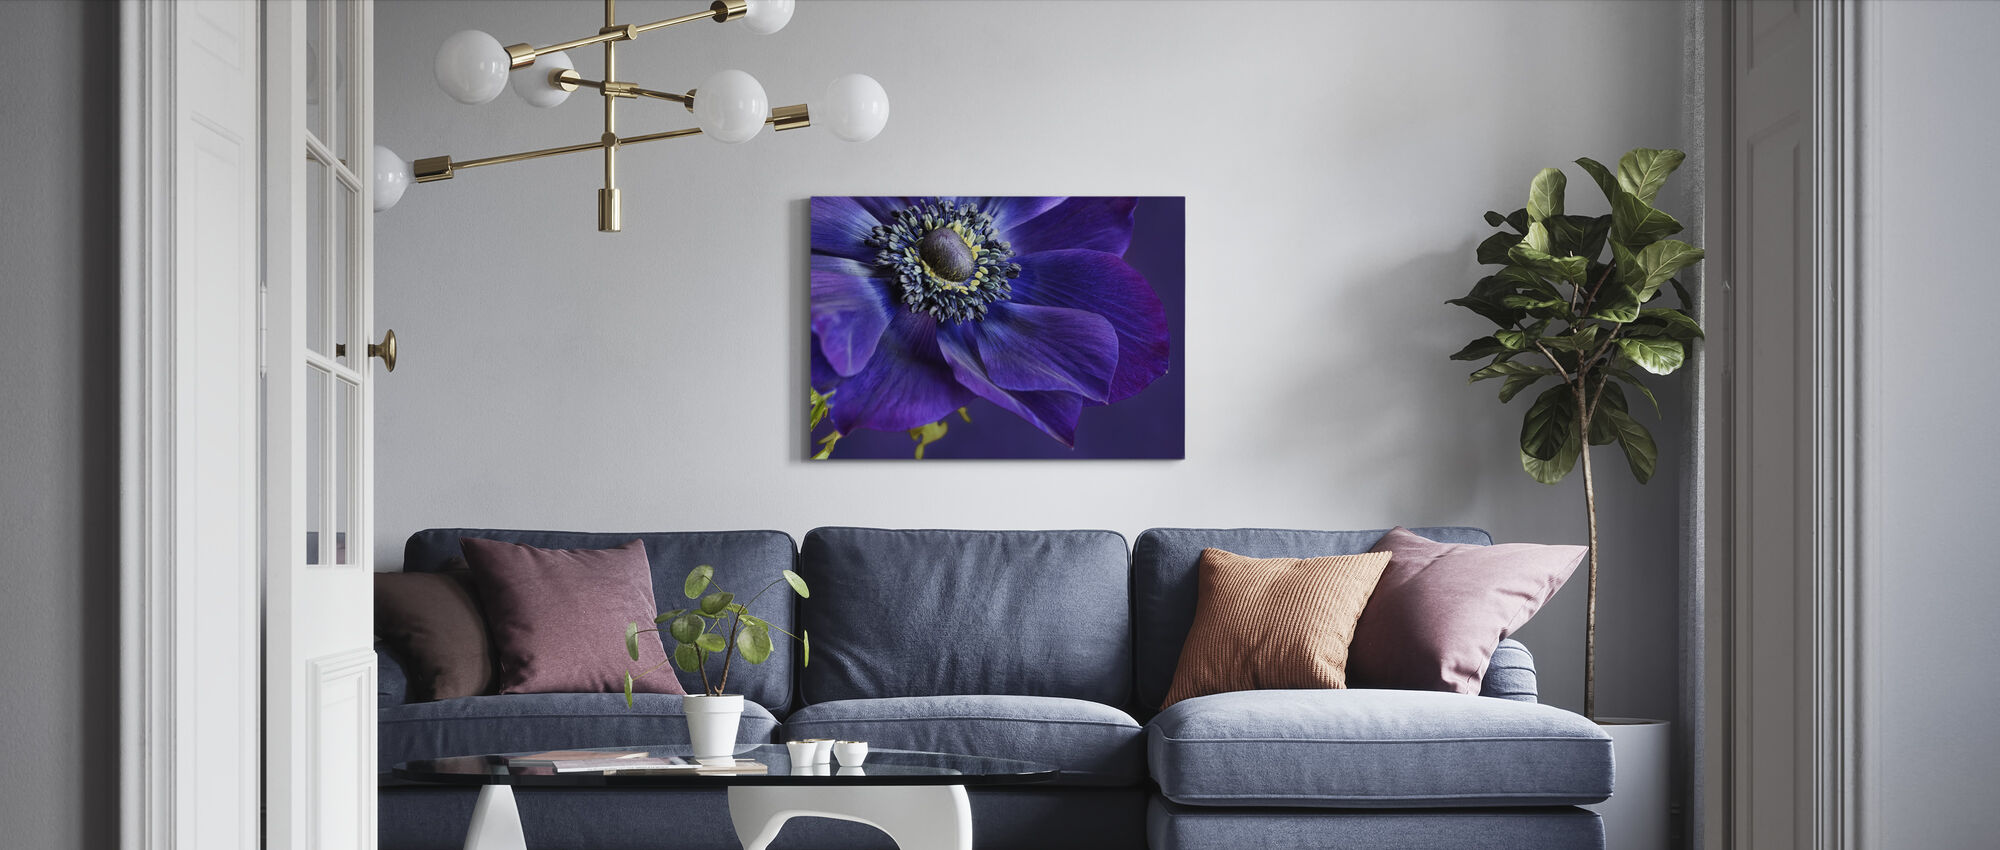 Indigo Anemone - Canvas print - Living Room